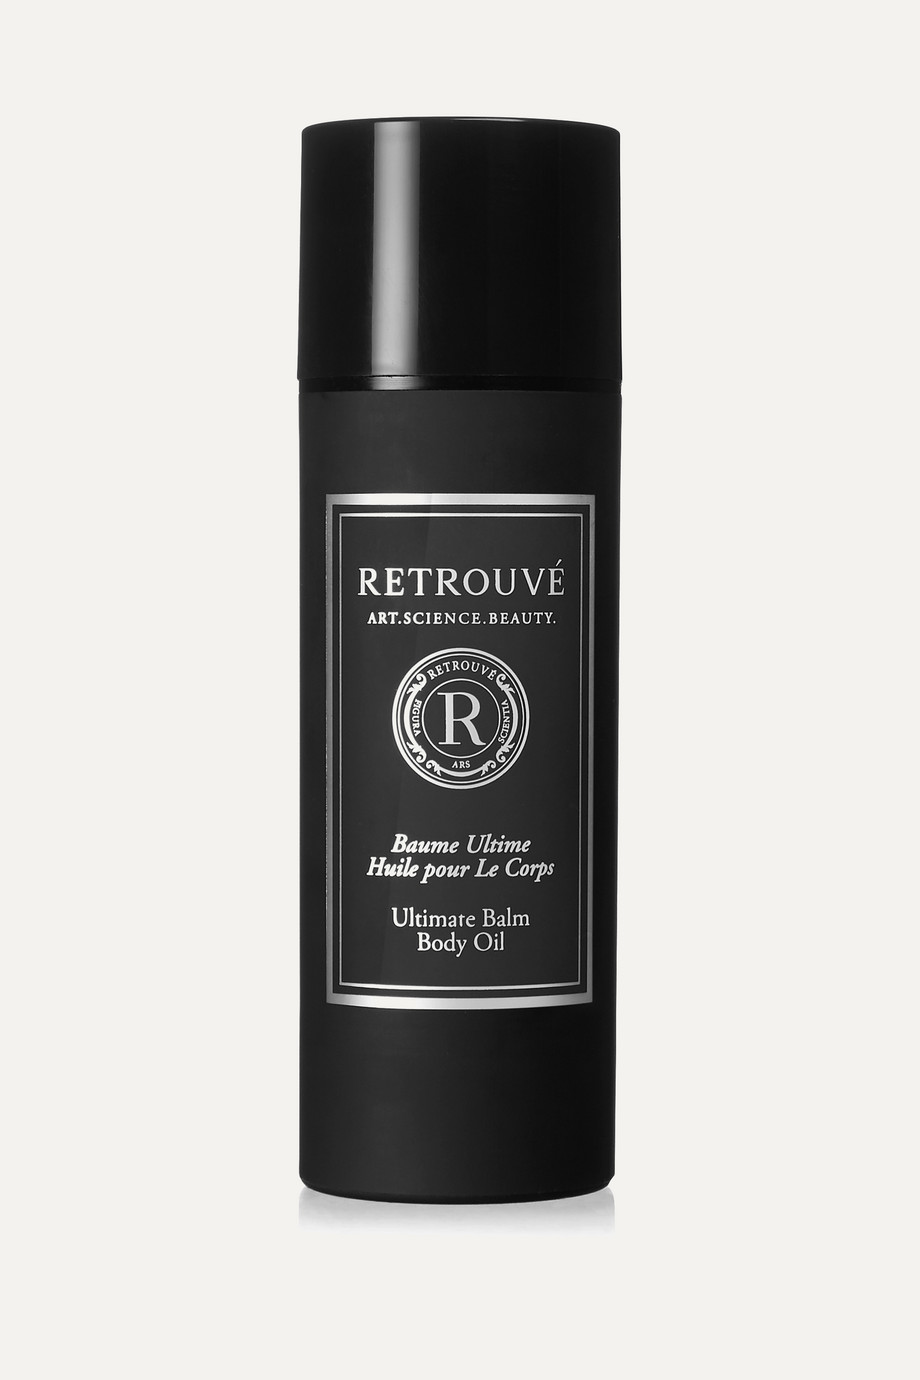 Retrouvé Ultimate Balm Body Oil, 150ml